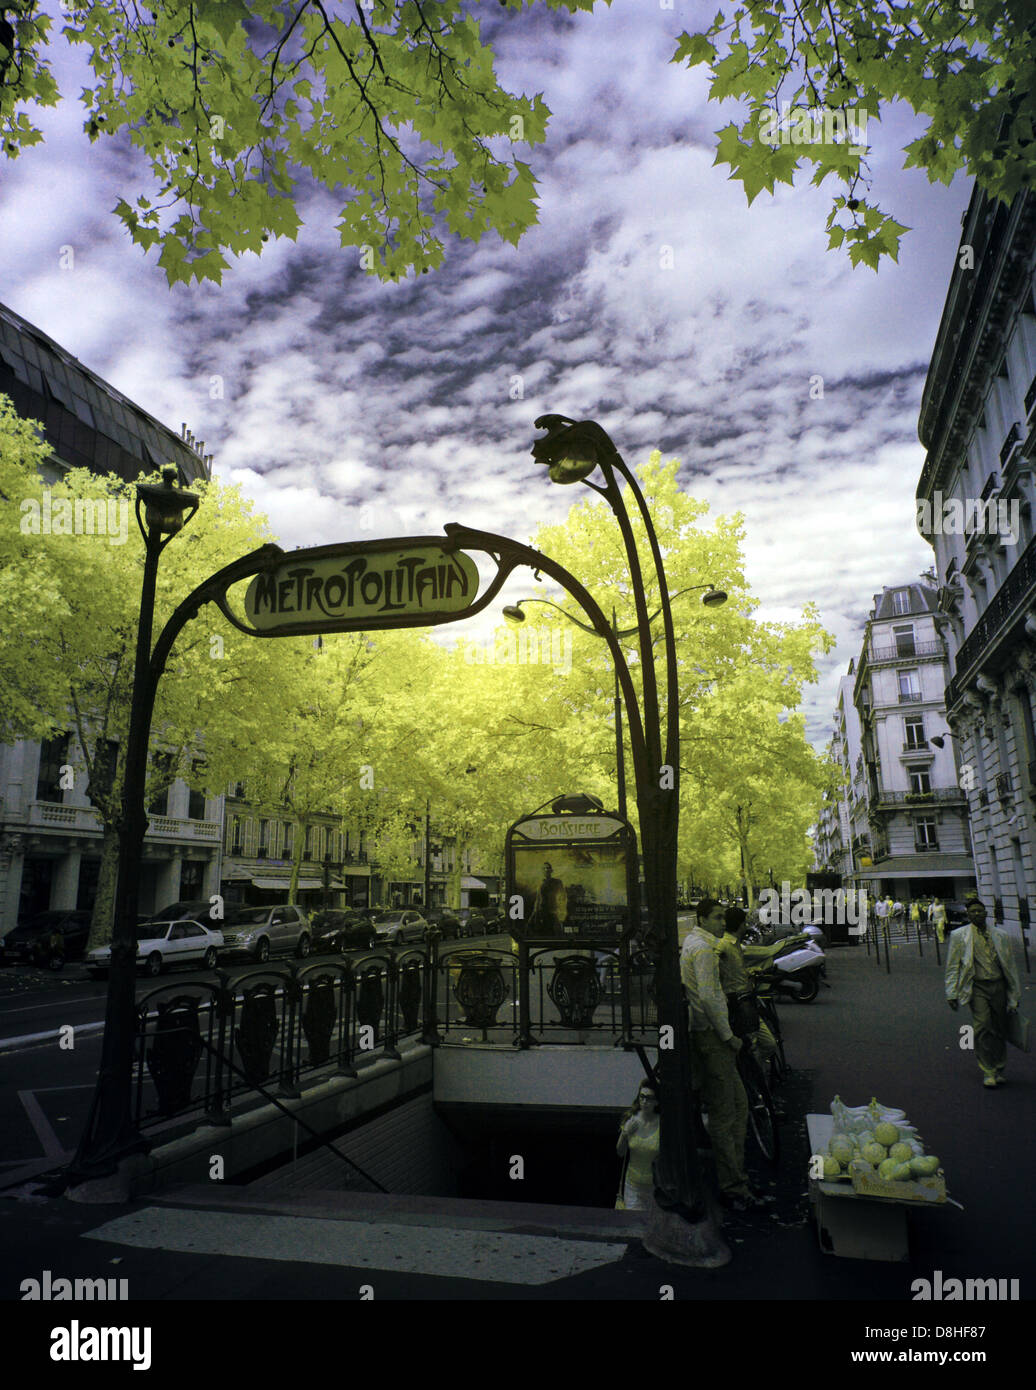 An,Art,Nouveau,Paris,metro,station,entrance,taken,with,an,IR,Infra-Red,adapted,Canon,5D,camera,DSLR,France,Europe,french,capital,unusual,gotonysmith,Guimard,entrances,tube,mass,transit,720nm,infrared,cast-iron,balustrade,decorated,in,plant-like,motifs,accompanied by a Métropolitain sign supported,cast,iron,two,orange,globes,atop,ornate,cast-iron,supports,in,the,form,of,plant,stems,Metropolitan,Metropolitain,gotonysmith,Buy Pictures of,Buy Images Of